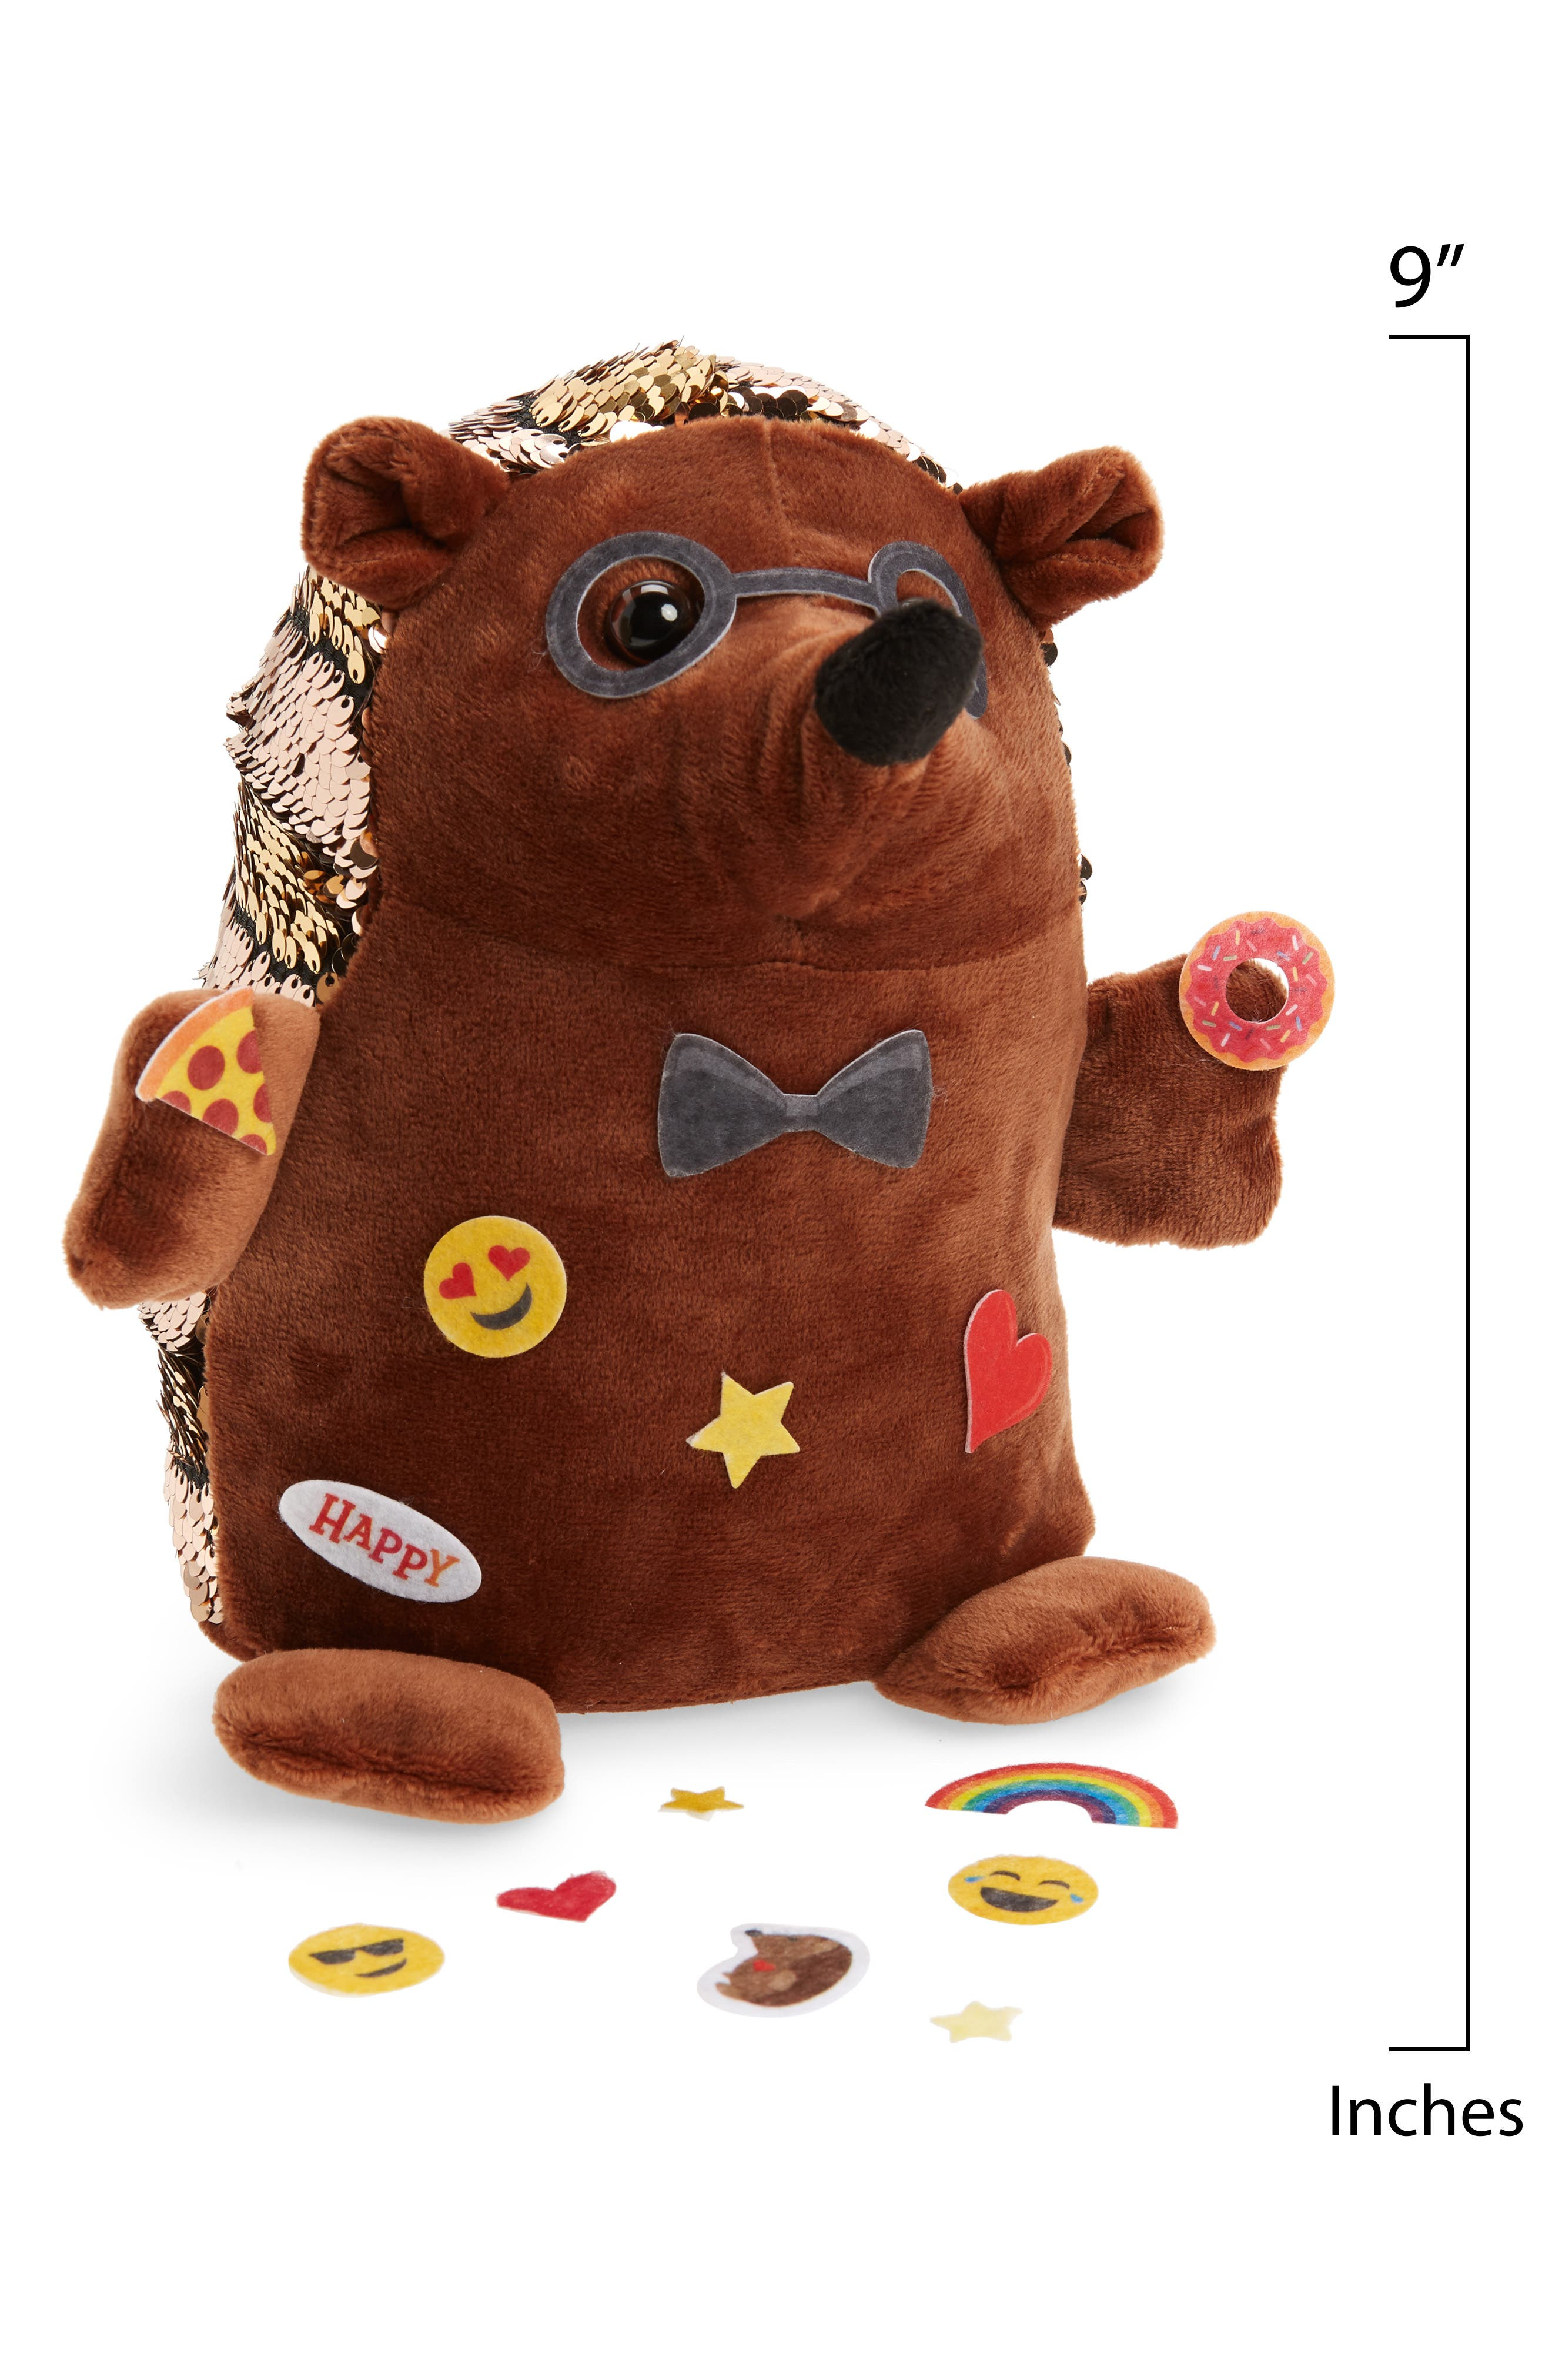 Sequin Pets Happy the Hedghog Plush Toy with Stickers,                             Alternate thumbnail 2, color,                             BROWN